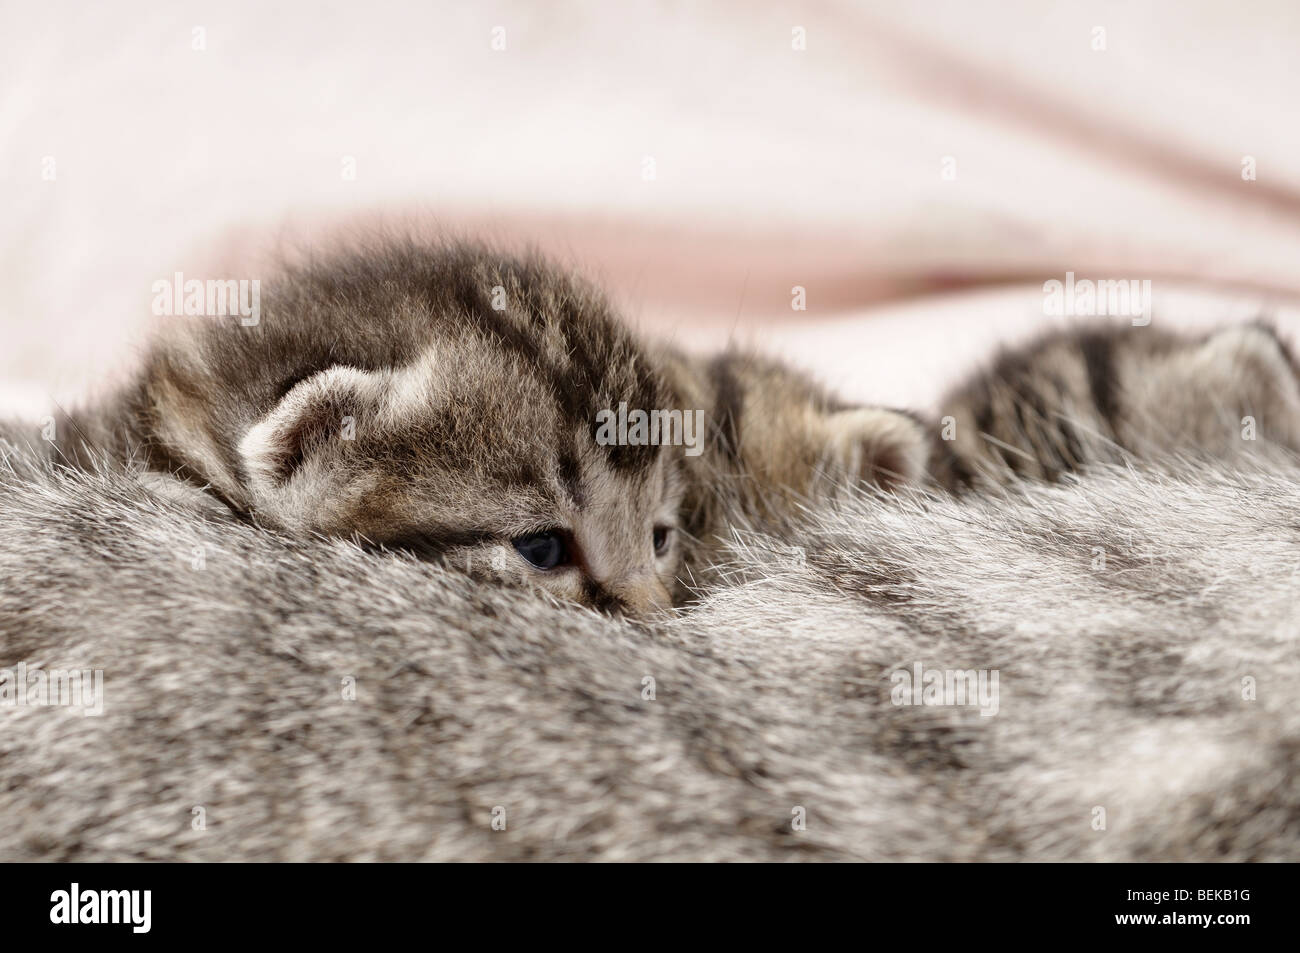 Stock photo of kittens suckling milk from their mother. - Stock Image